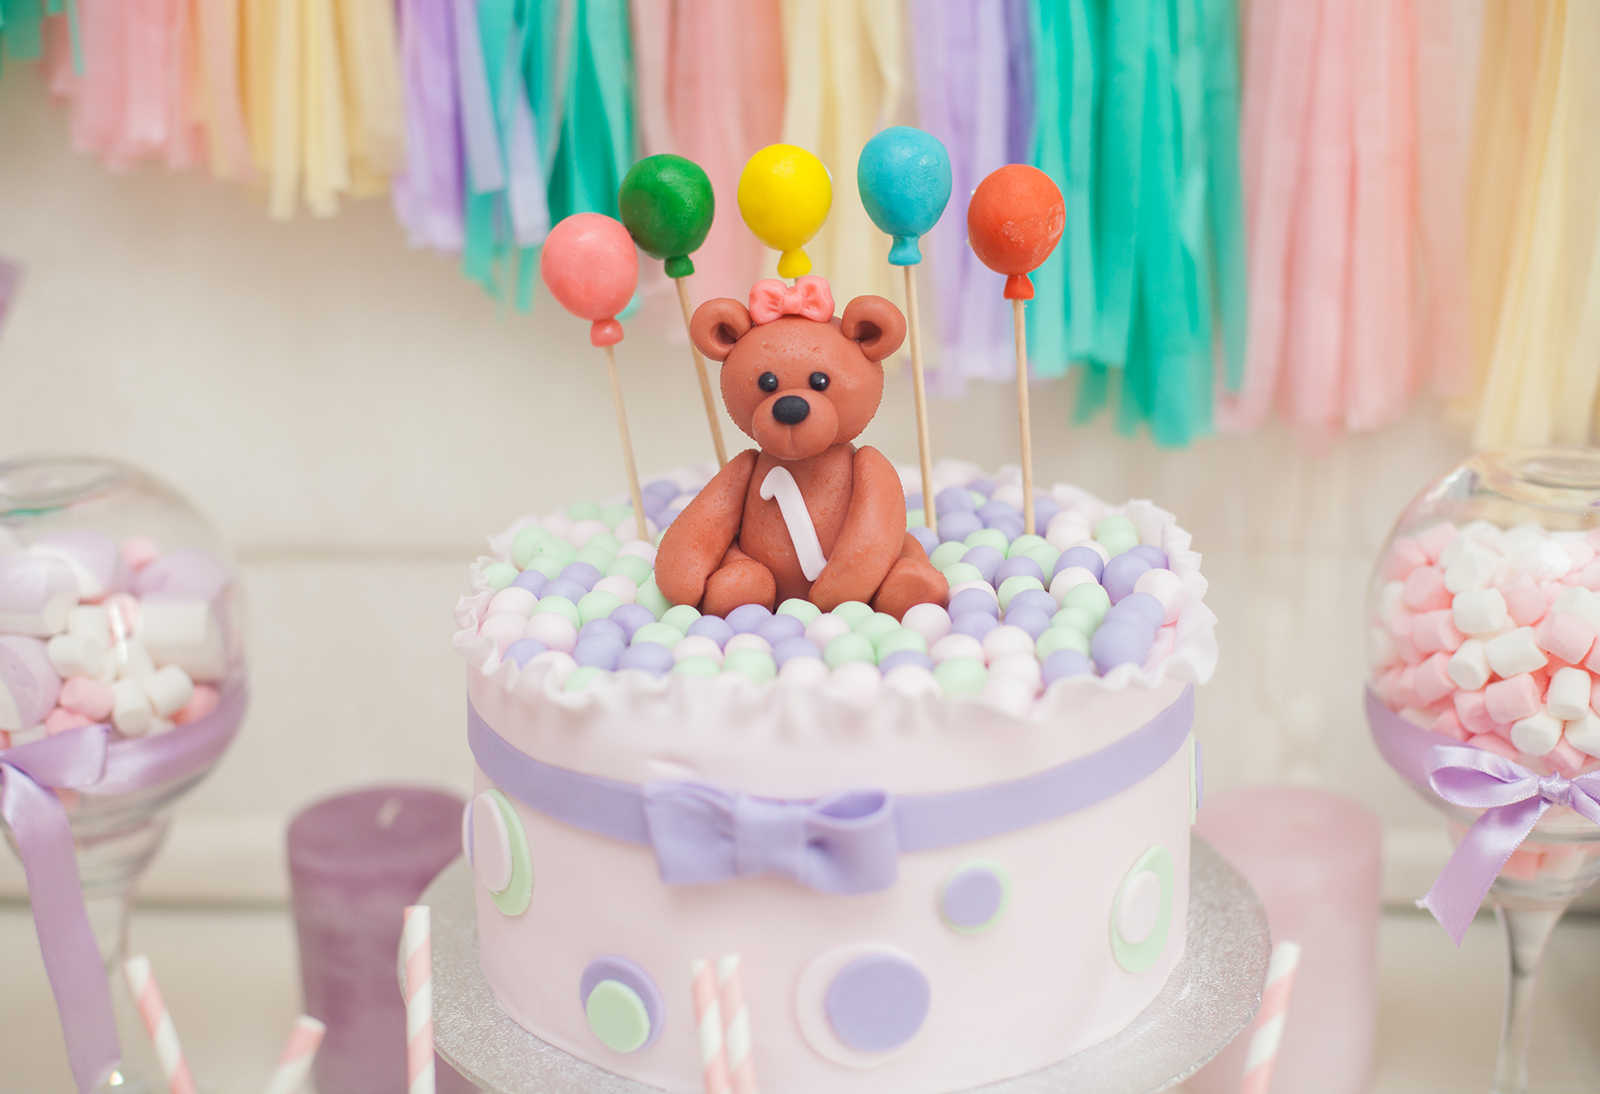 Interesting Baby Shower Games That Make the Celebration Memorable